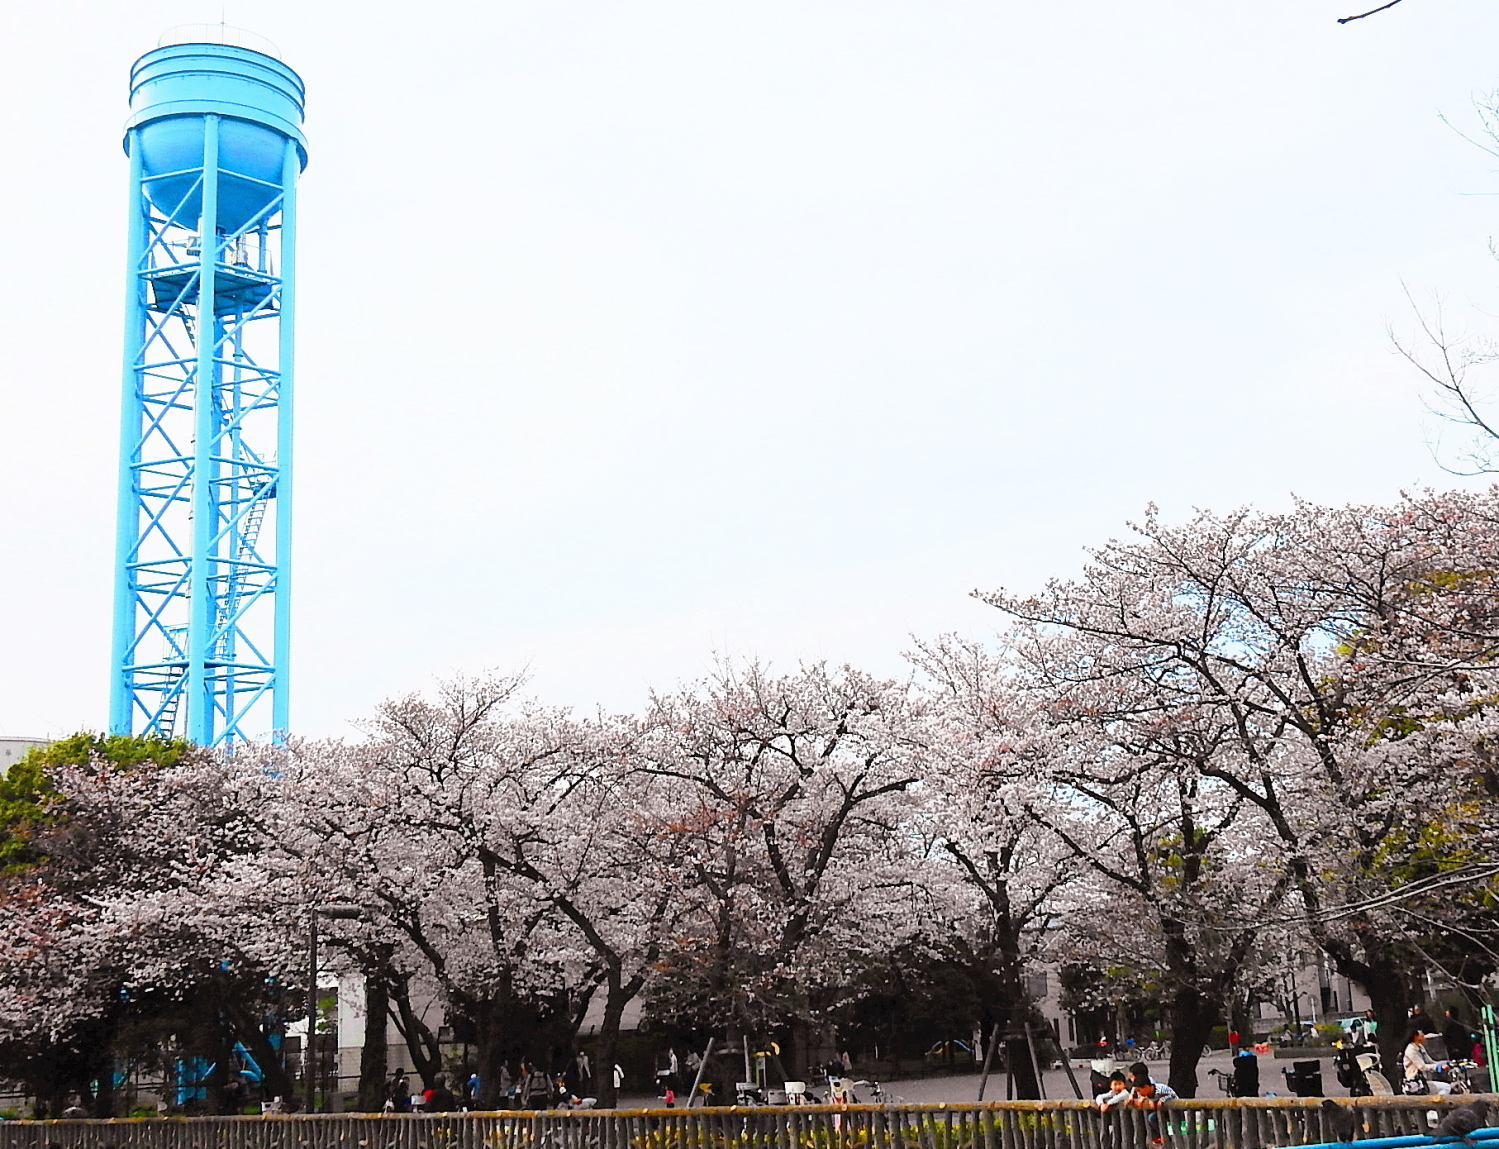 Is it the mini-Skytree of Nerima?